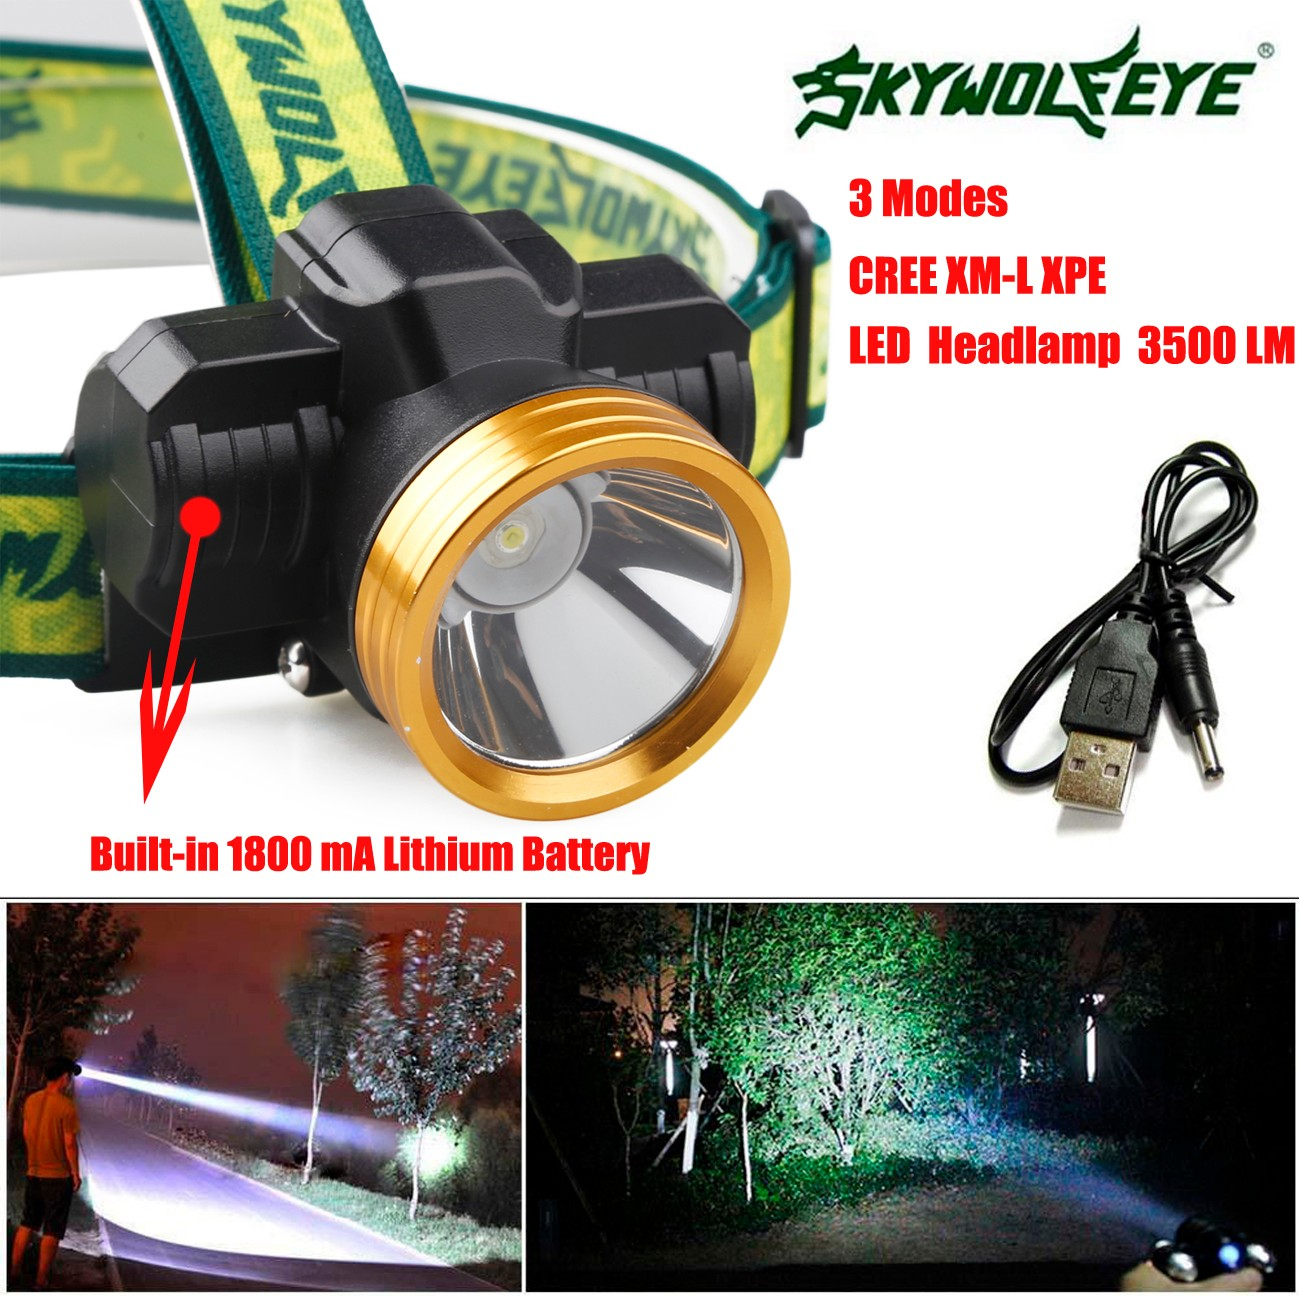 3500LM CREE XPE LED Headlamp Headlight Head Light Lamp 1800mAh Rechargeable USB